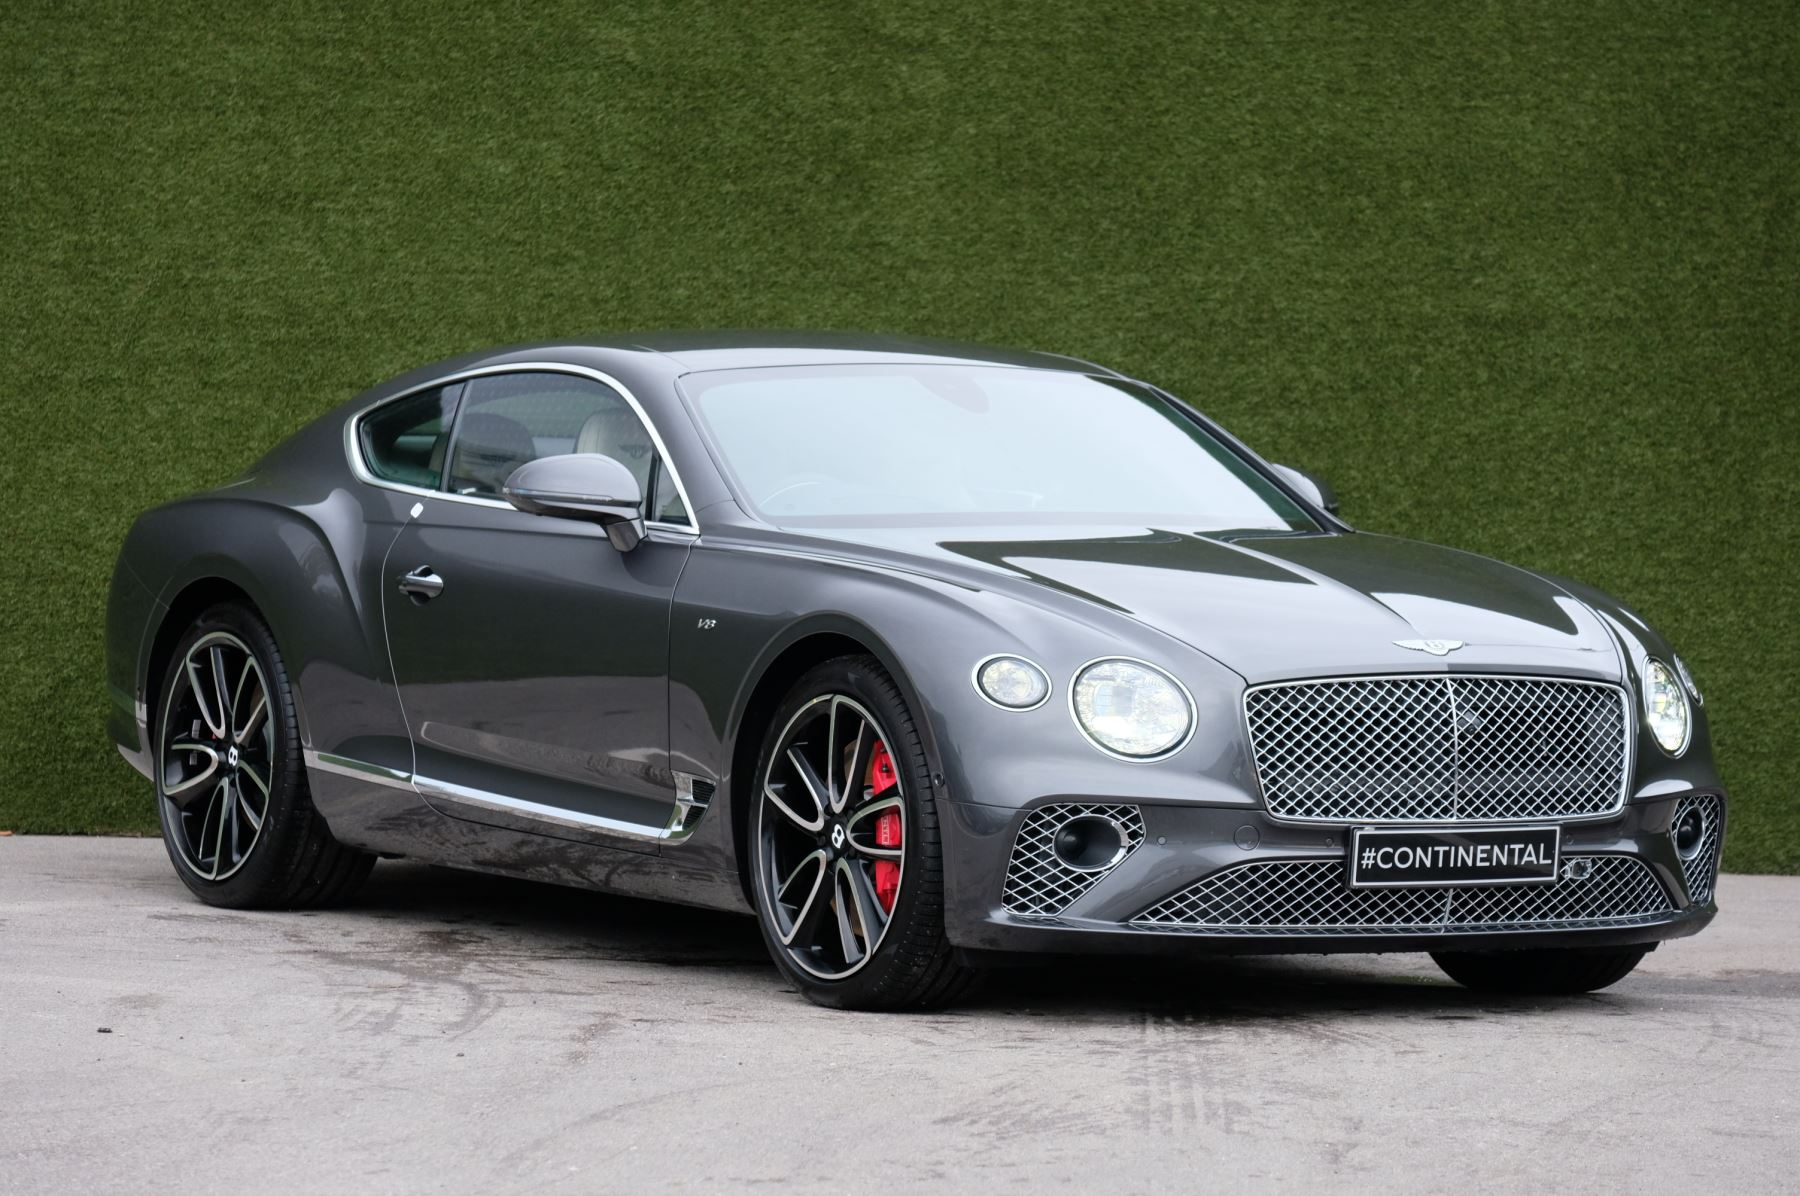 Bentley Continental GT 4.0 V8 Mulliner Driving Spec 2dr Auto [City+Tour] Automatic Coupe (2020)